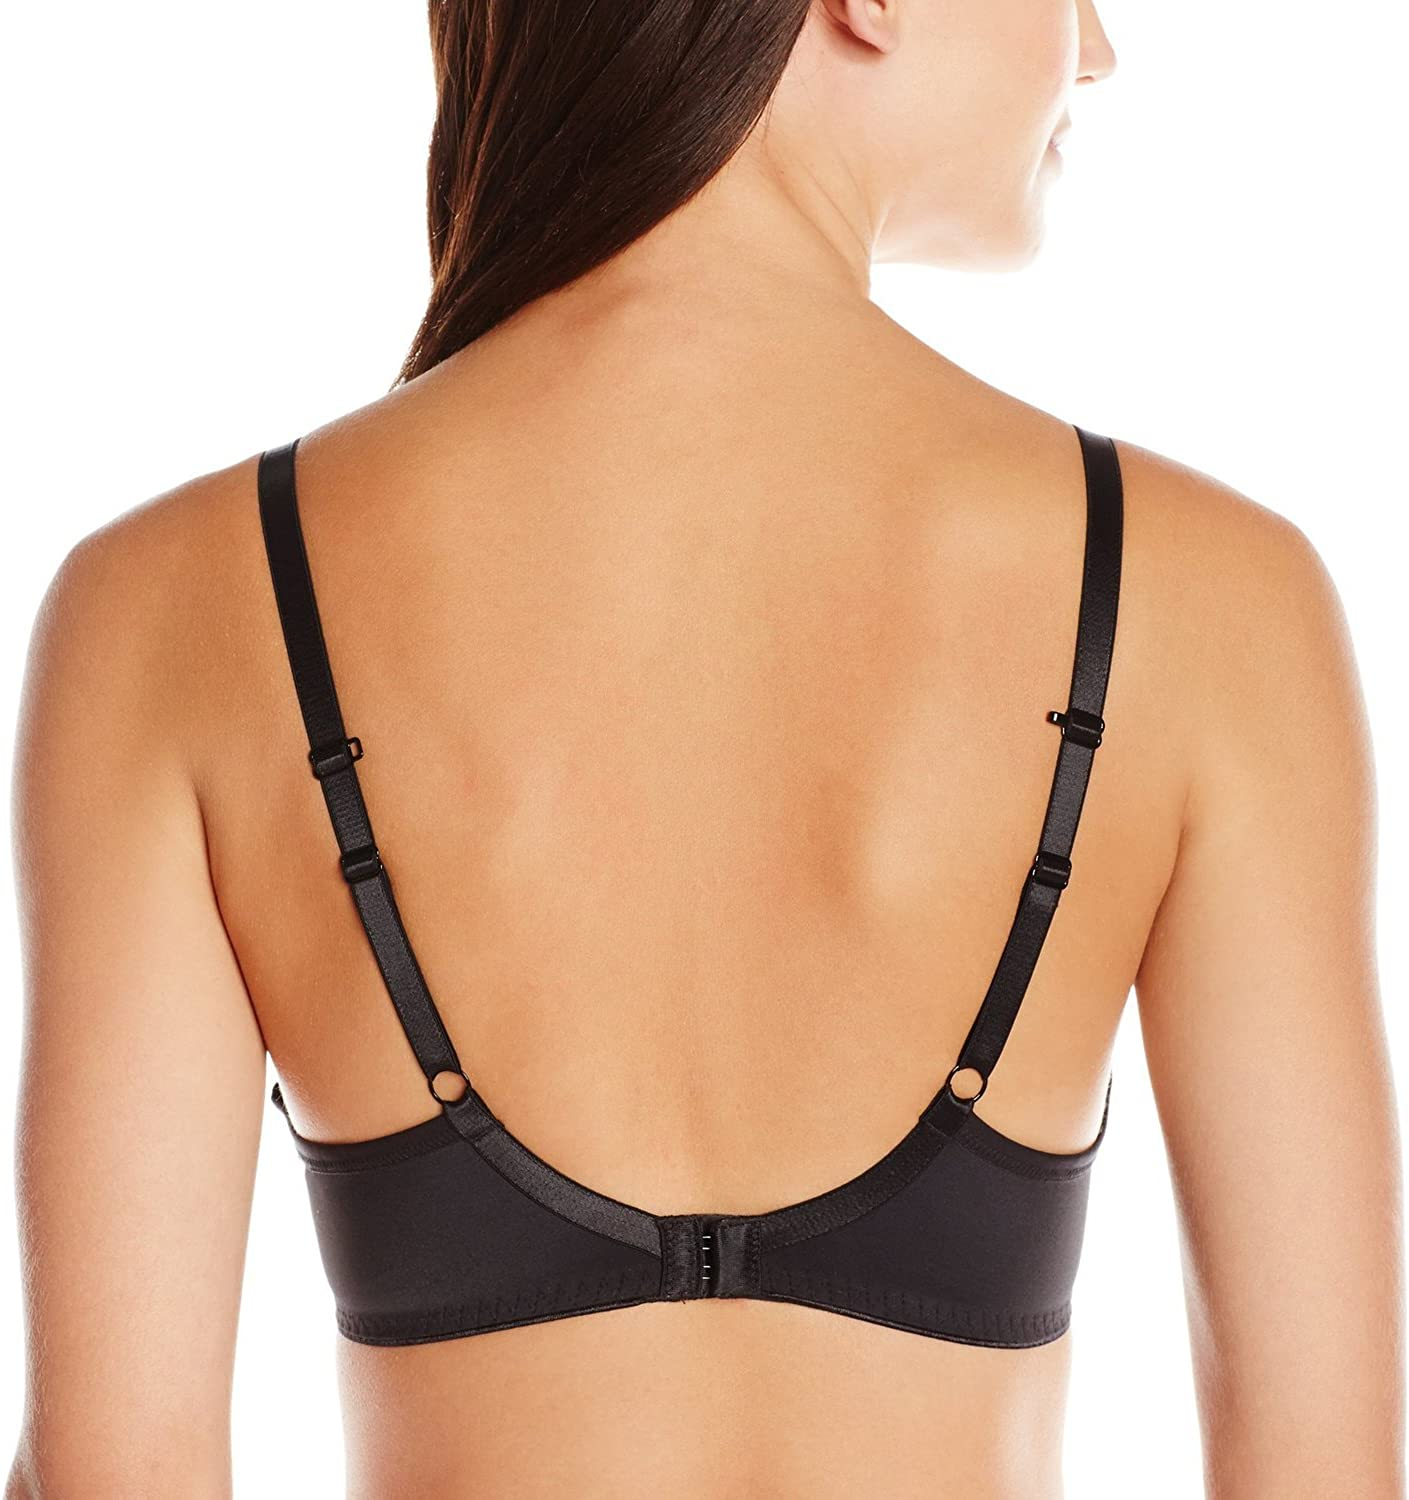 Freya Muse Underwire Spacer Molded T-Shirt Bra Dove